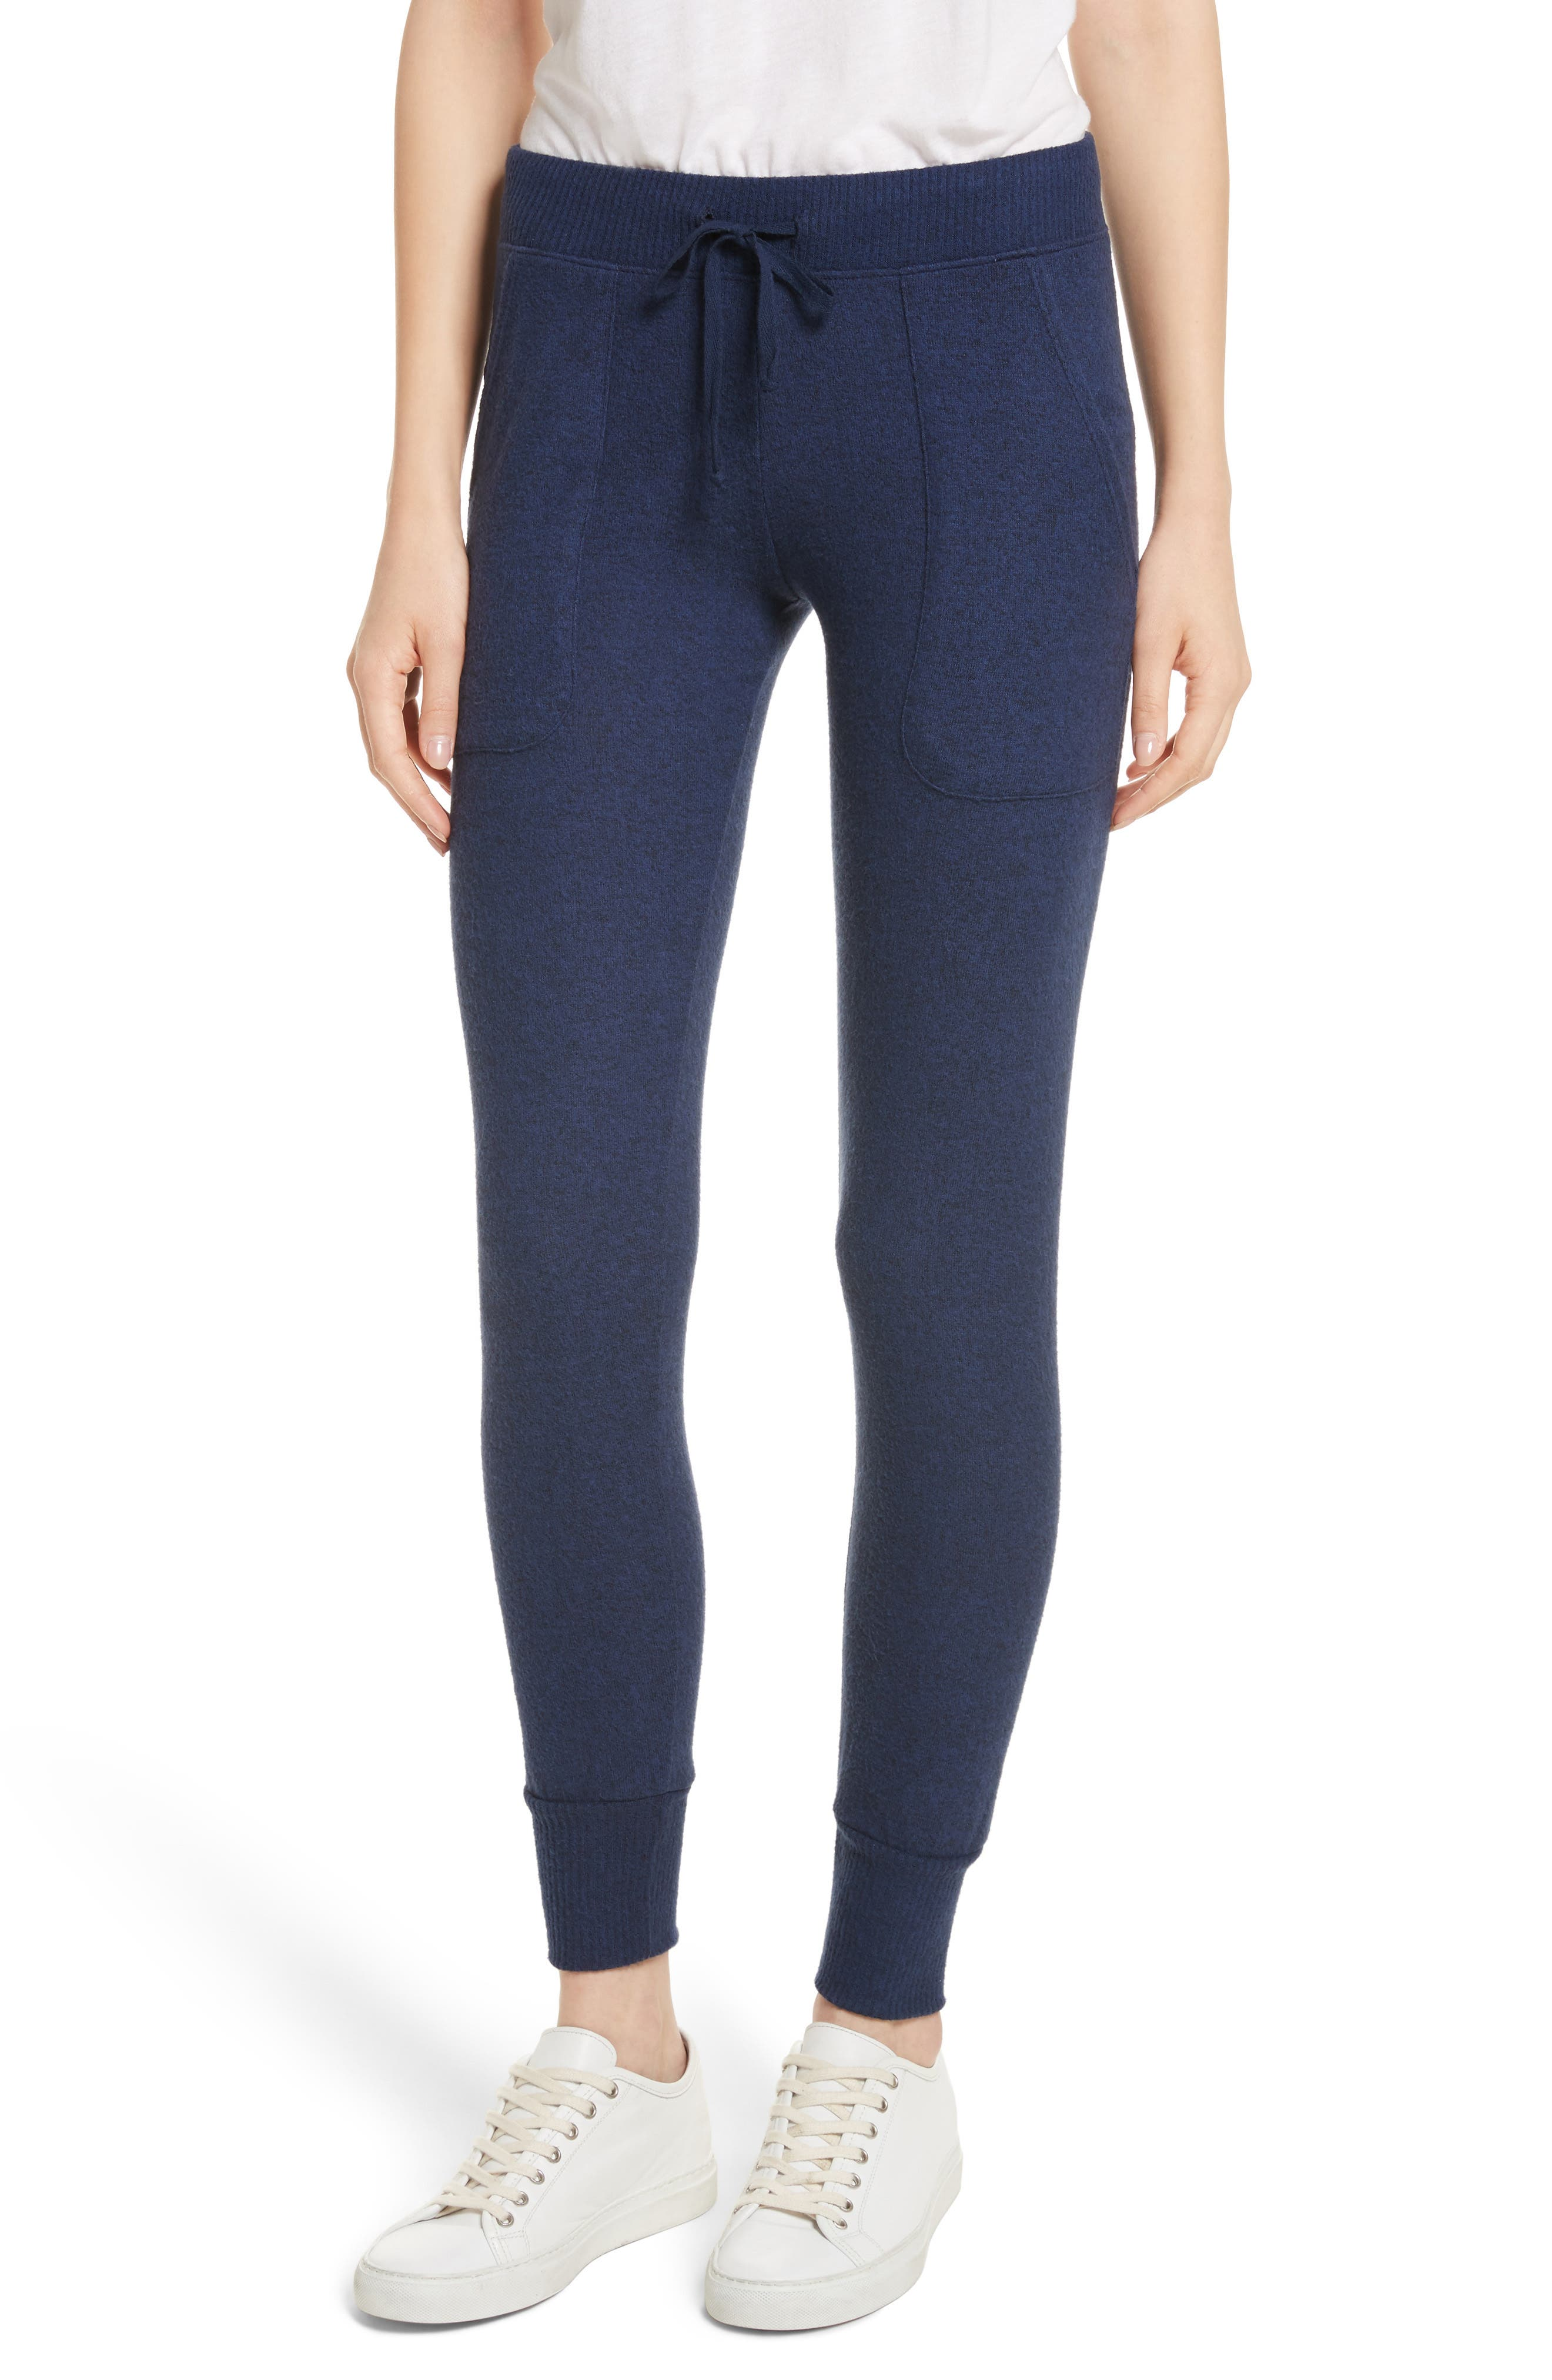 Alternate Image 1 Selected - Joie Tendra Jogger Pants